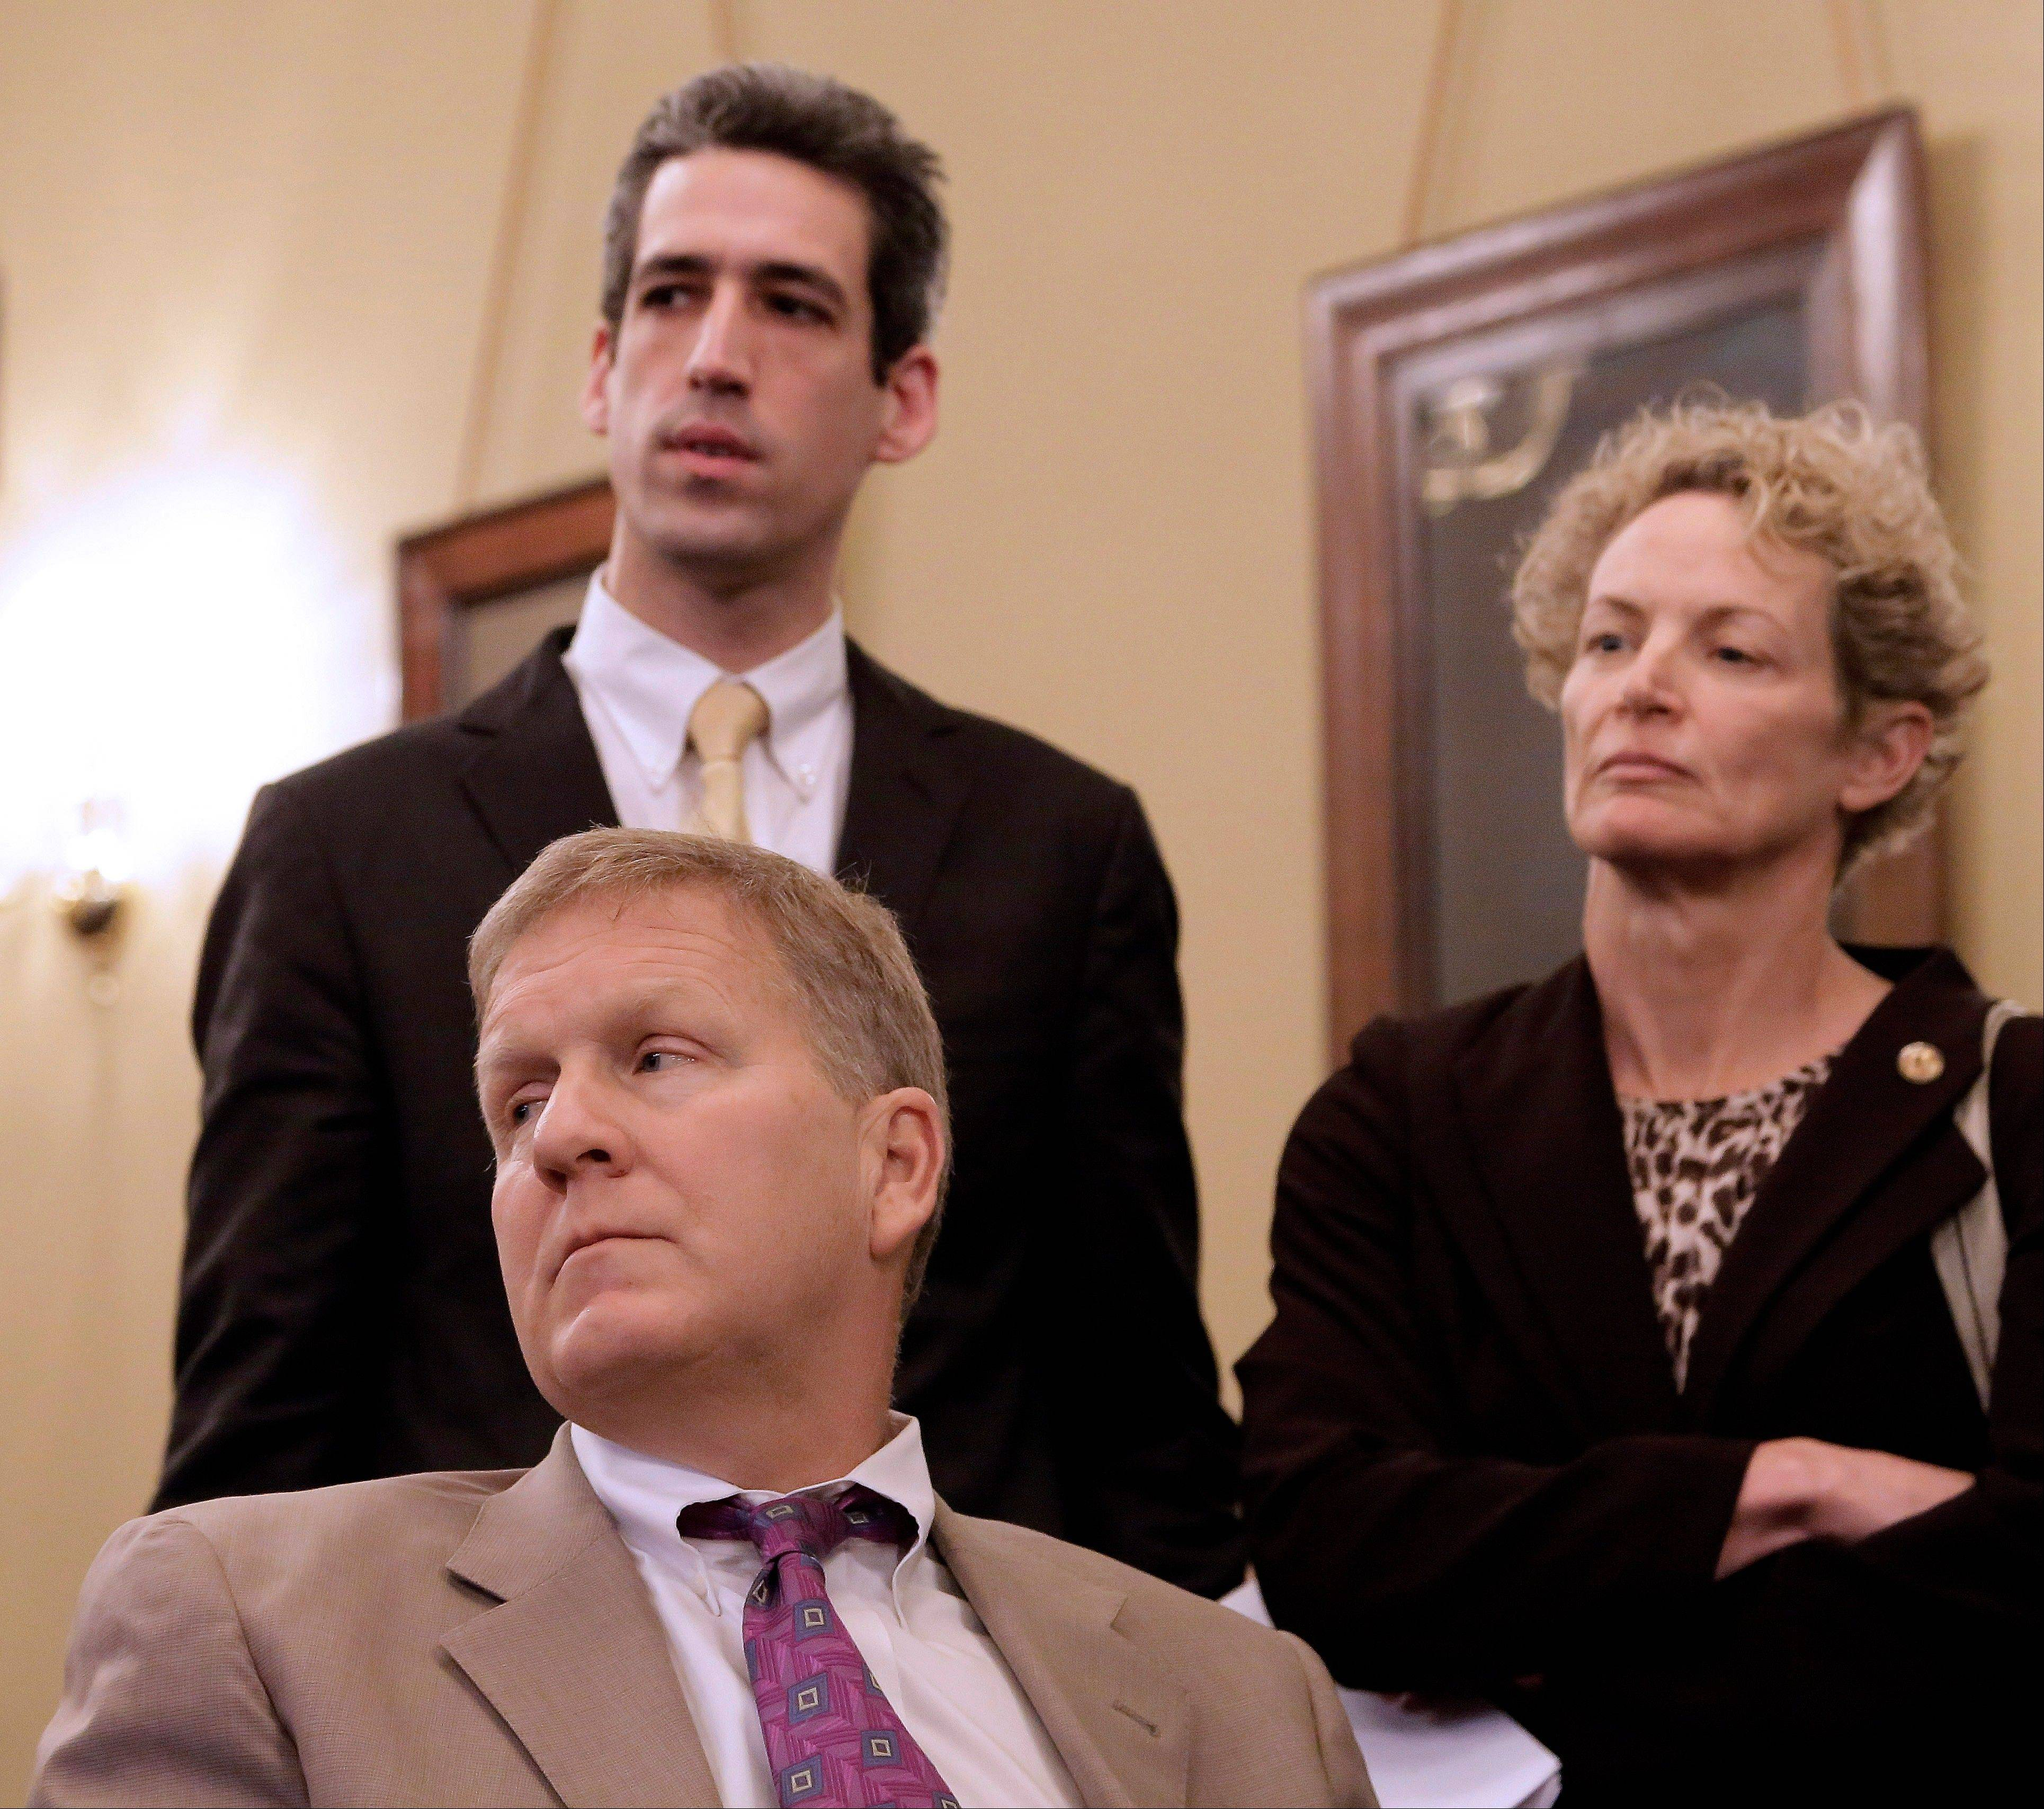 State Sen. Daniel Biss of Evanston, top left, Illinois House Minority Leader Tom Cross of Oswego, bottom, and Rep. Elaine Nekritz of Northbrook, right, are behind one of several pension-reforming plans in Springfield.